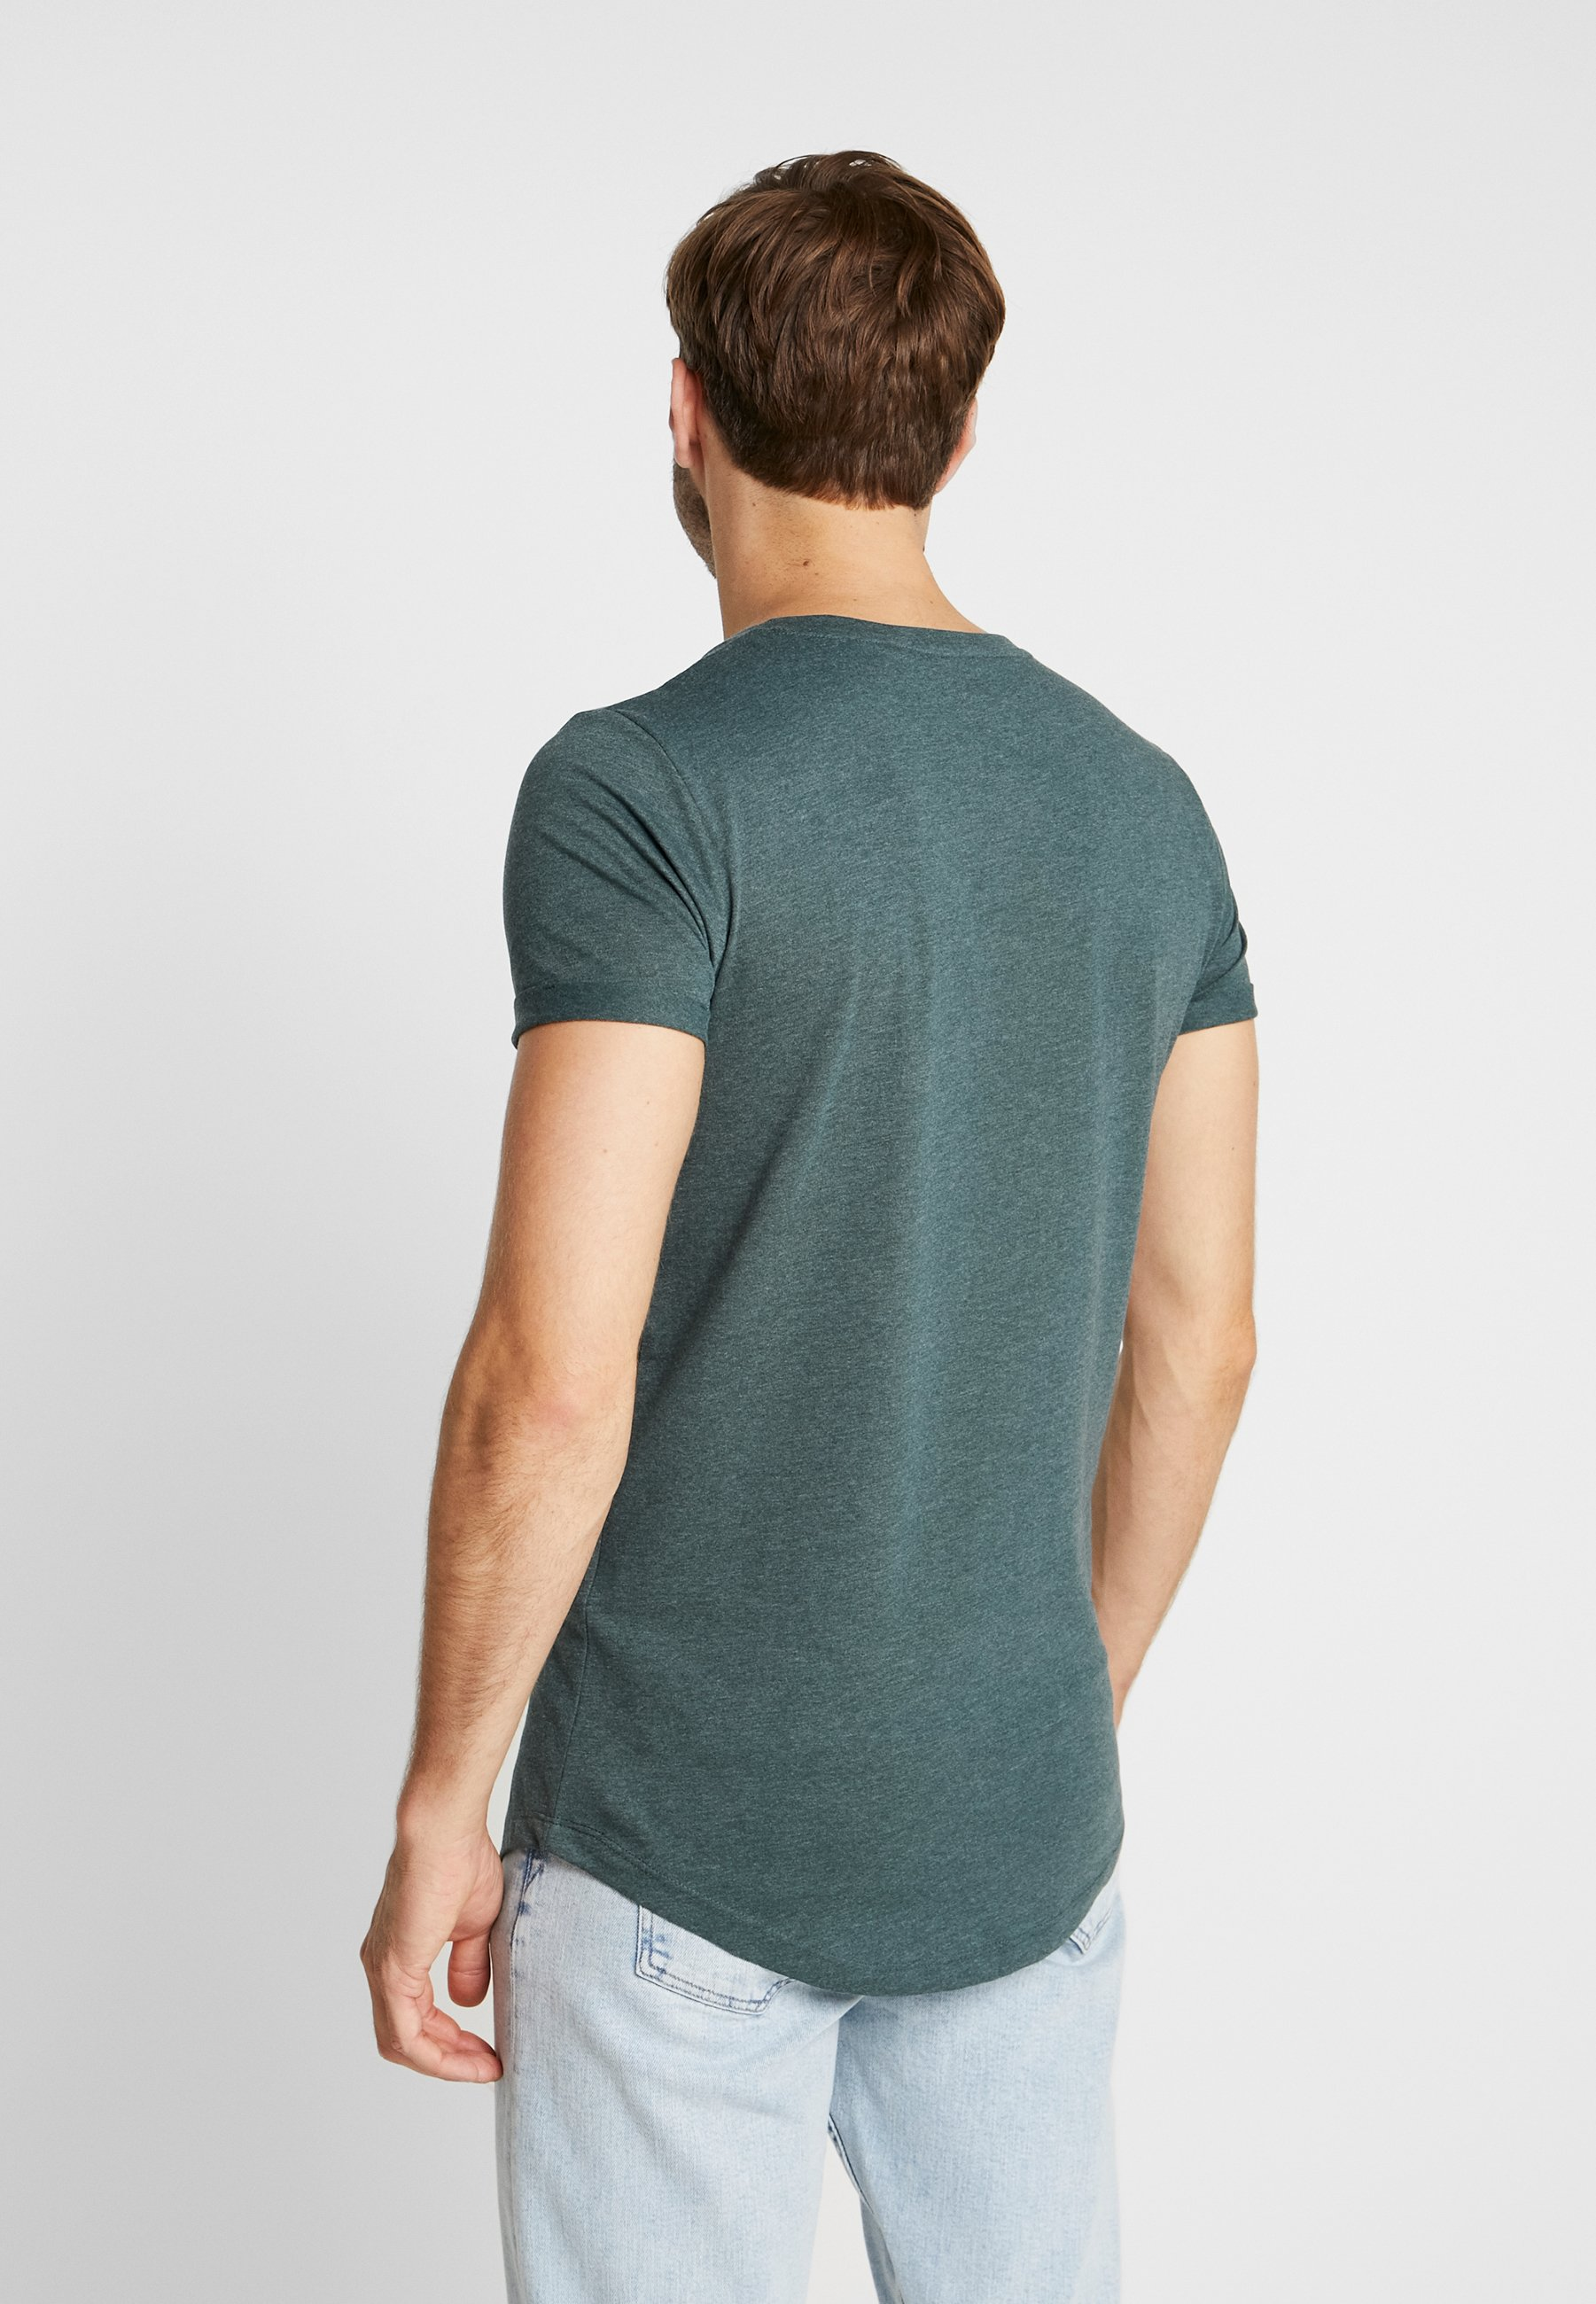 TOM TAILOR DENIM LONG BASIC WITH LOGO - Basic T-shirt - dark gable green melange HoSjQ